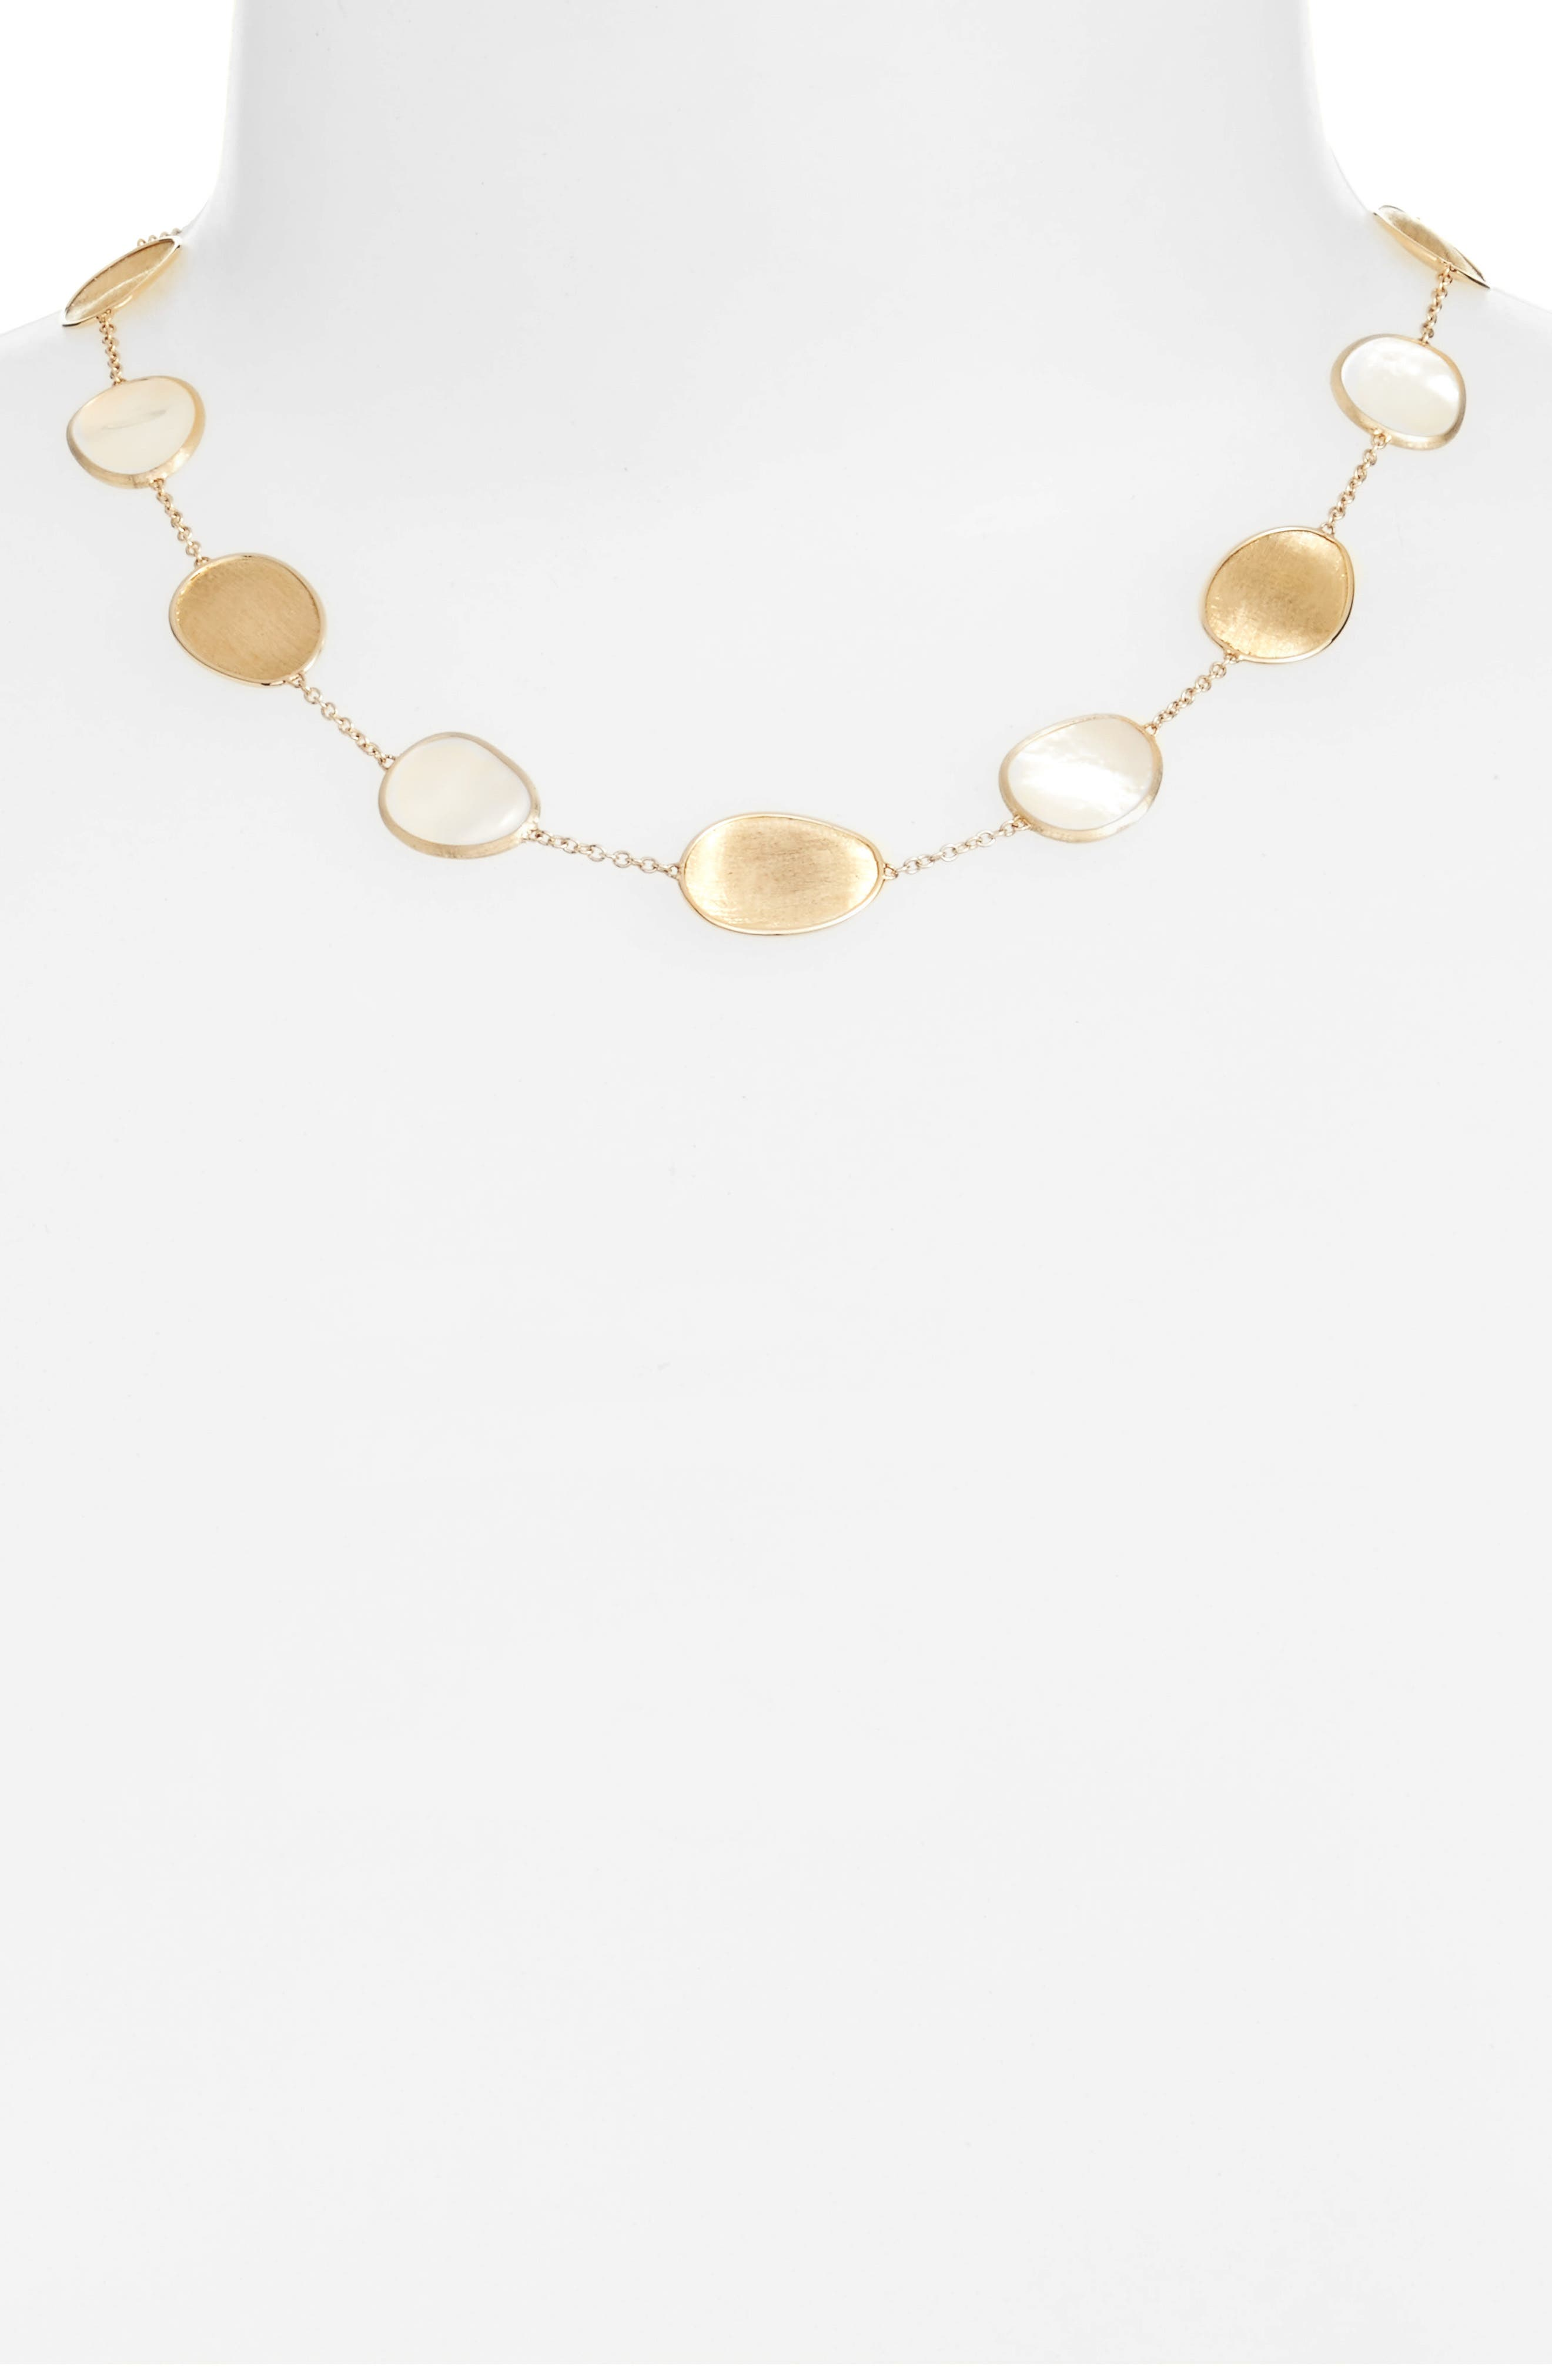 Lunaria Mother of Pearl Collar Necklace,                             Alternate thumbnail 2, color,                             WHITE MOTHER OF PEARL